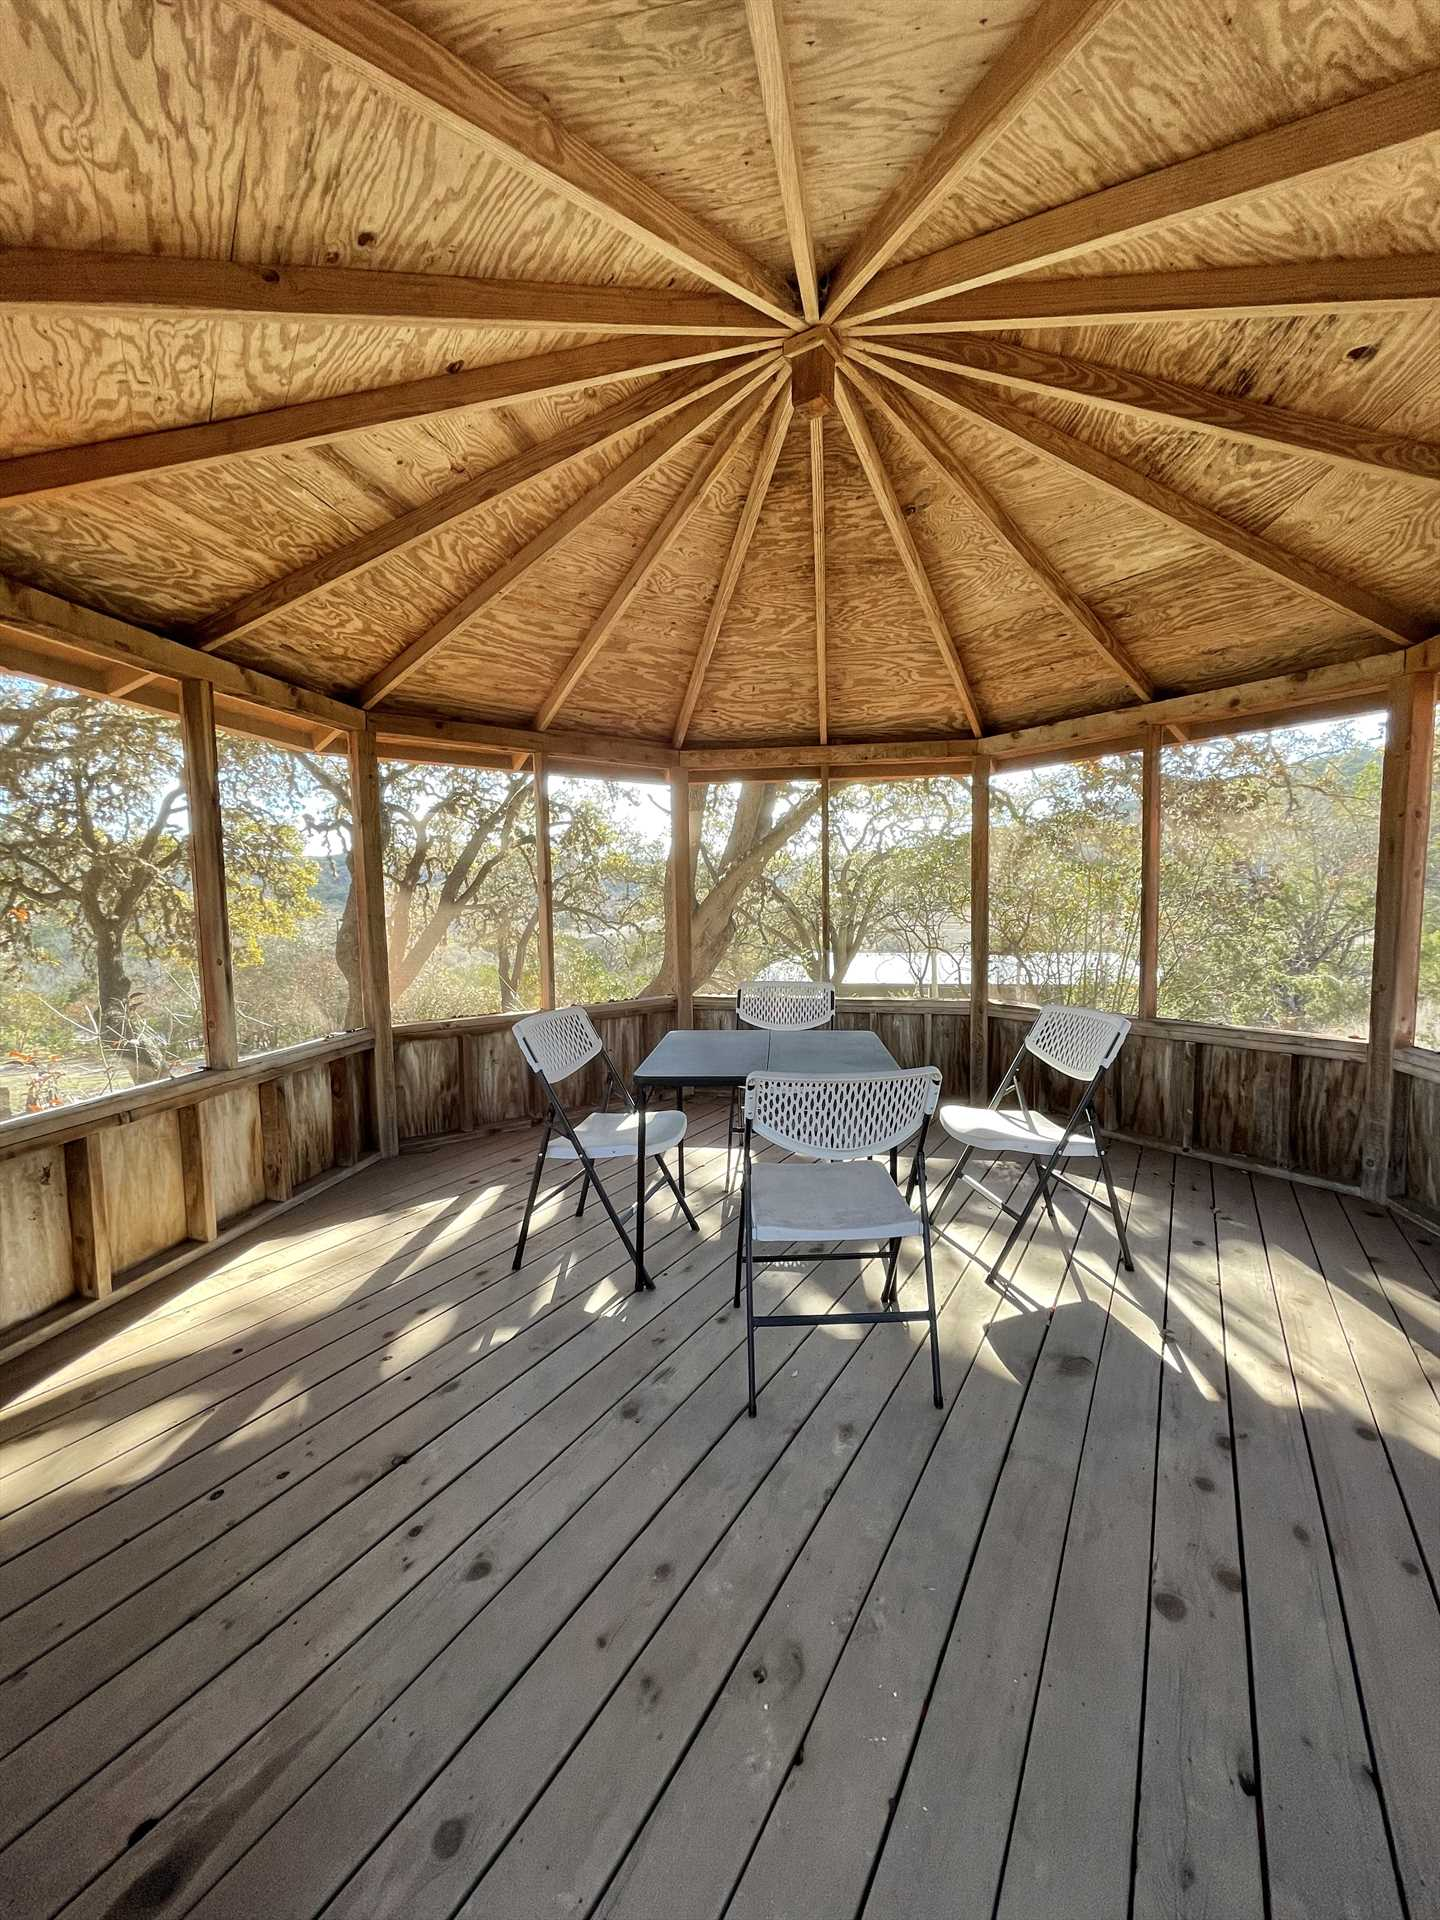 The shaded cover of the gazebo offers 360 degrees of Hill Country views.